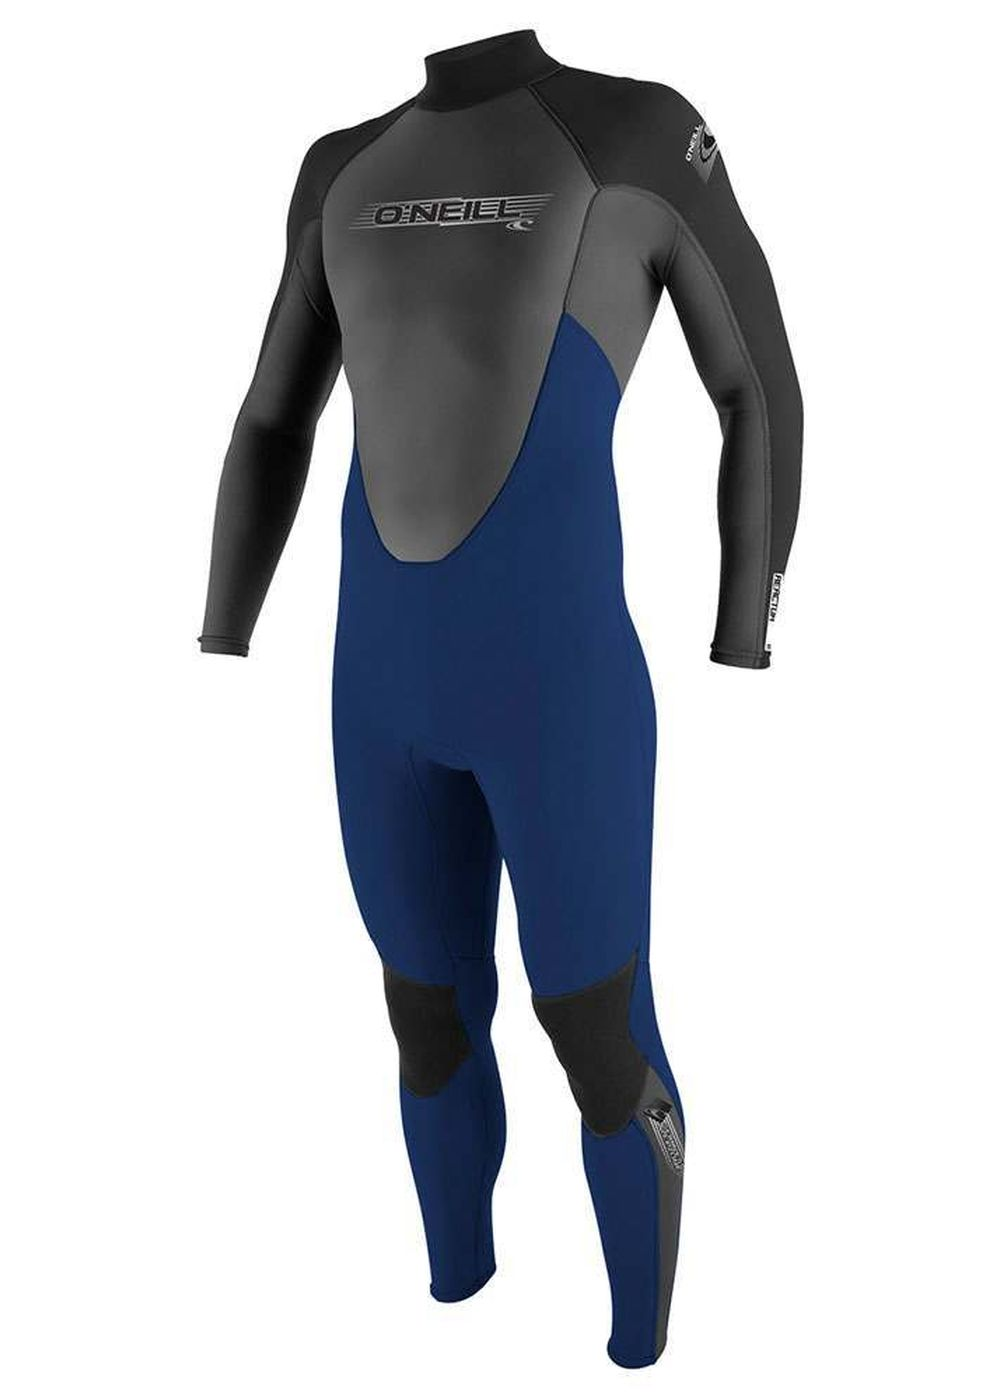 Oneill Reactor 3/2 Wetsuit Nvy/graph/blk 2017 Picture